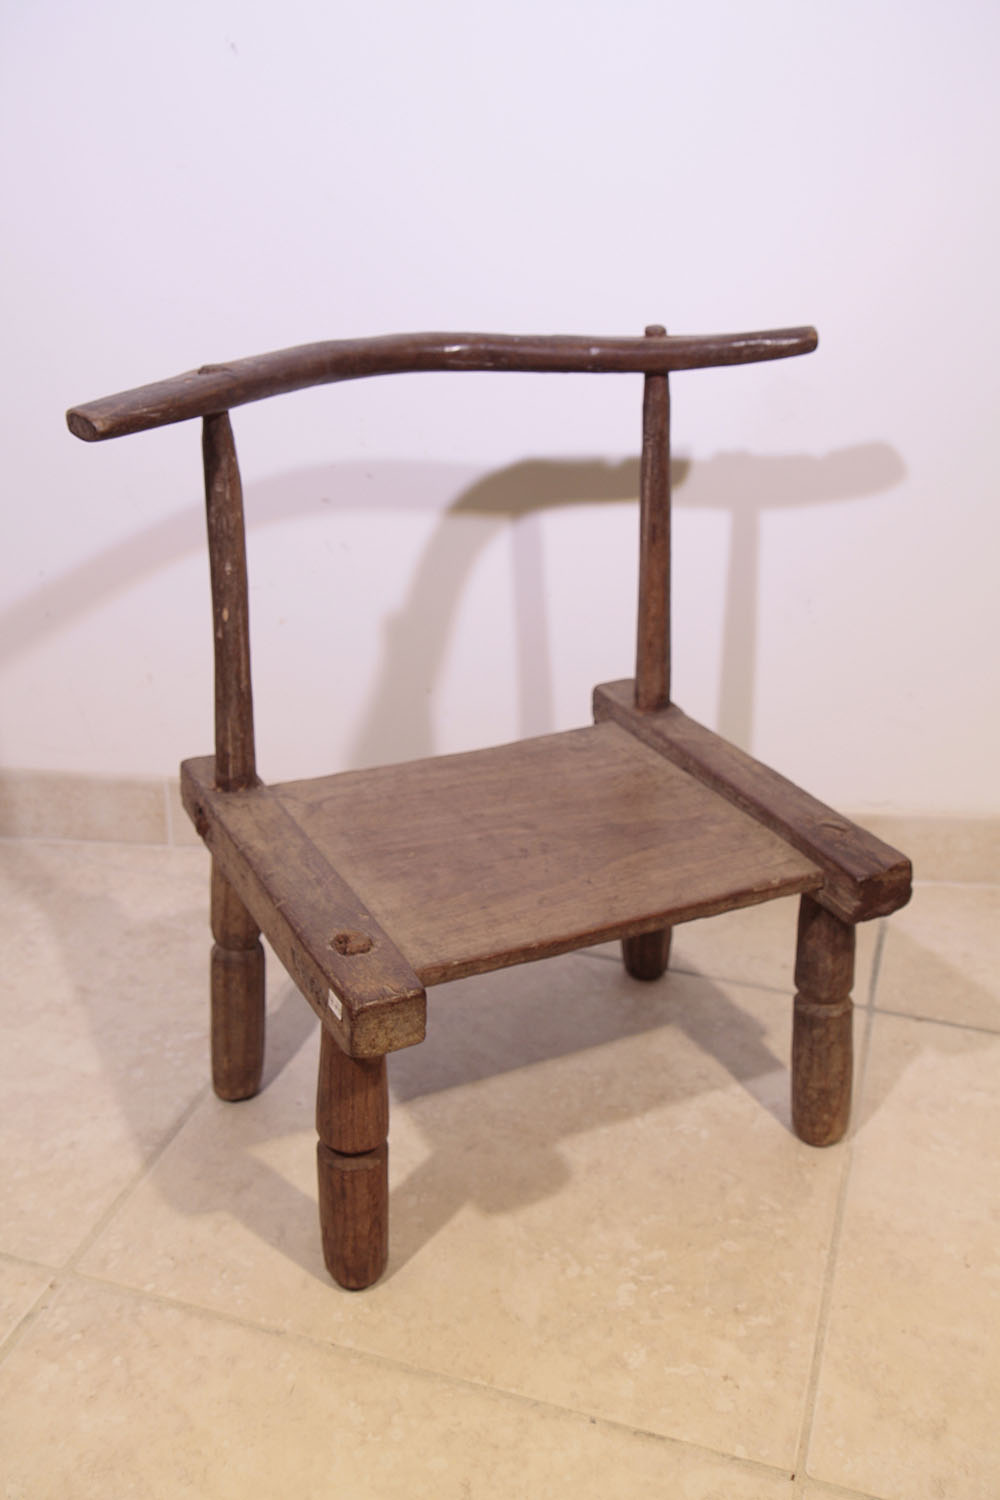 Ancienne chaise africaine baoul 9 003 75 galerie art for Chaise africaine